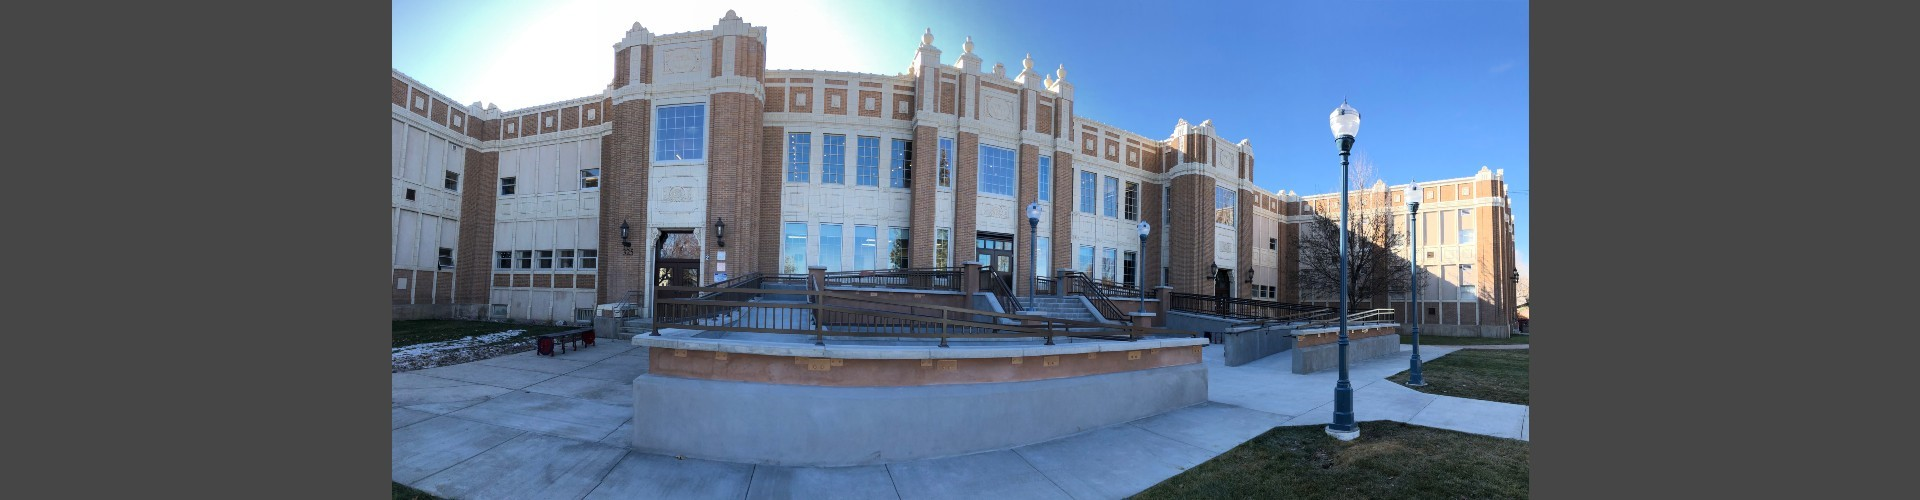 PHS front entrance pano